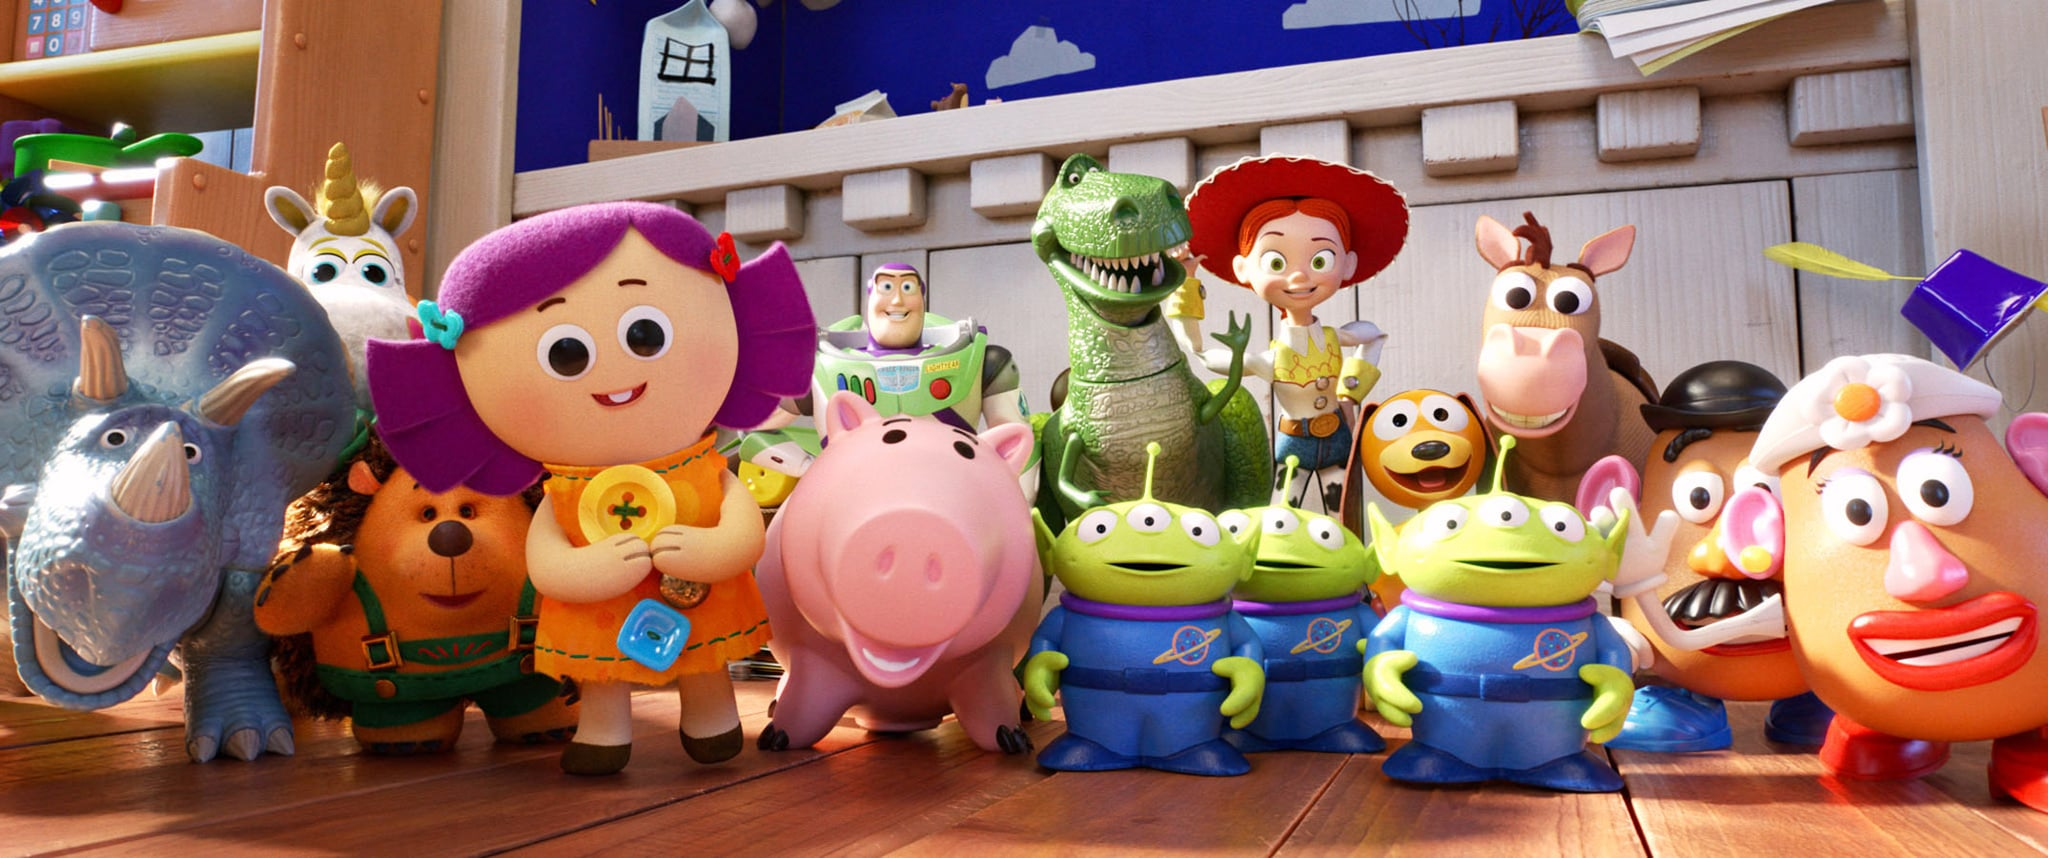 Despite Sequel Fatigue, Toy Story 4 Broke the Global Box Office Record For an Animated Film